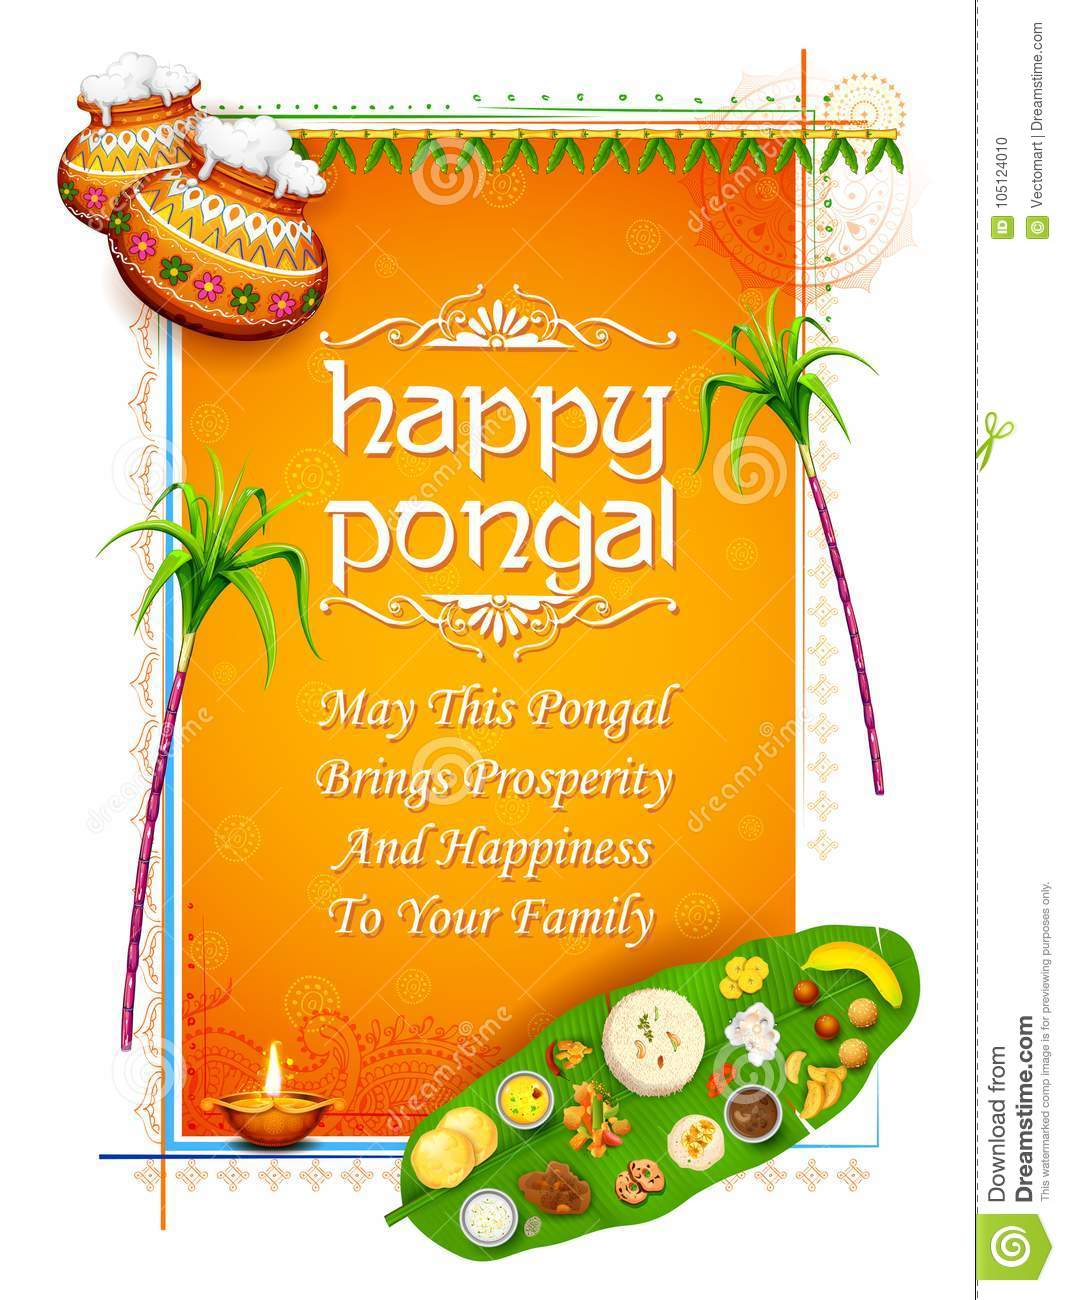 Happy pongal holiday harvest festival of tamil nadu south india happy pongal holiday harvest festival of tamil nadu south india greeting background m4hsunfo